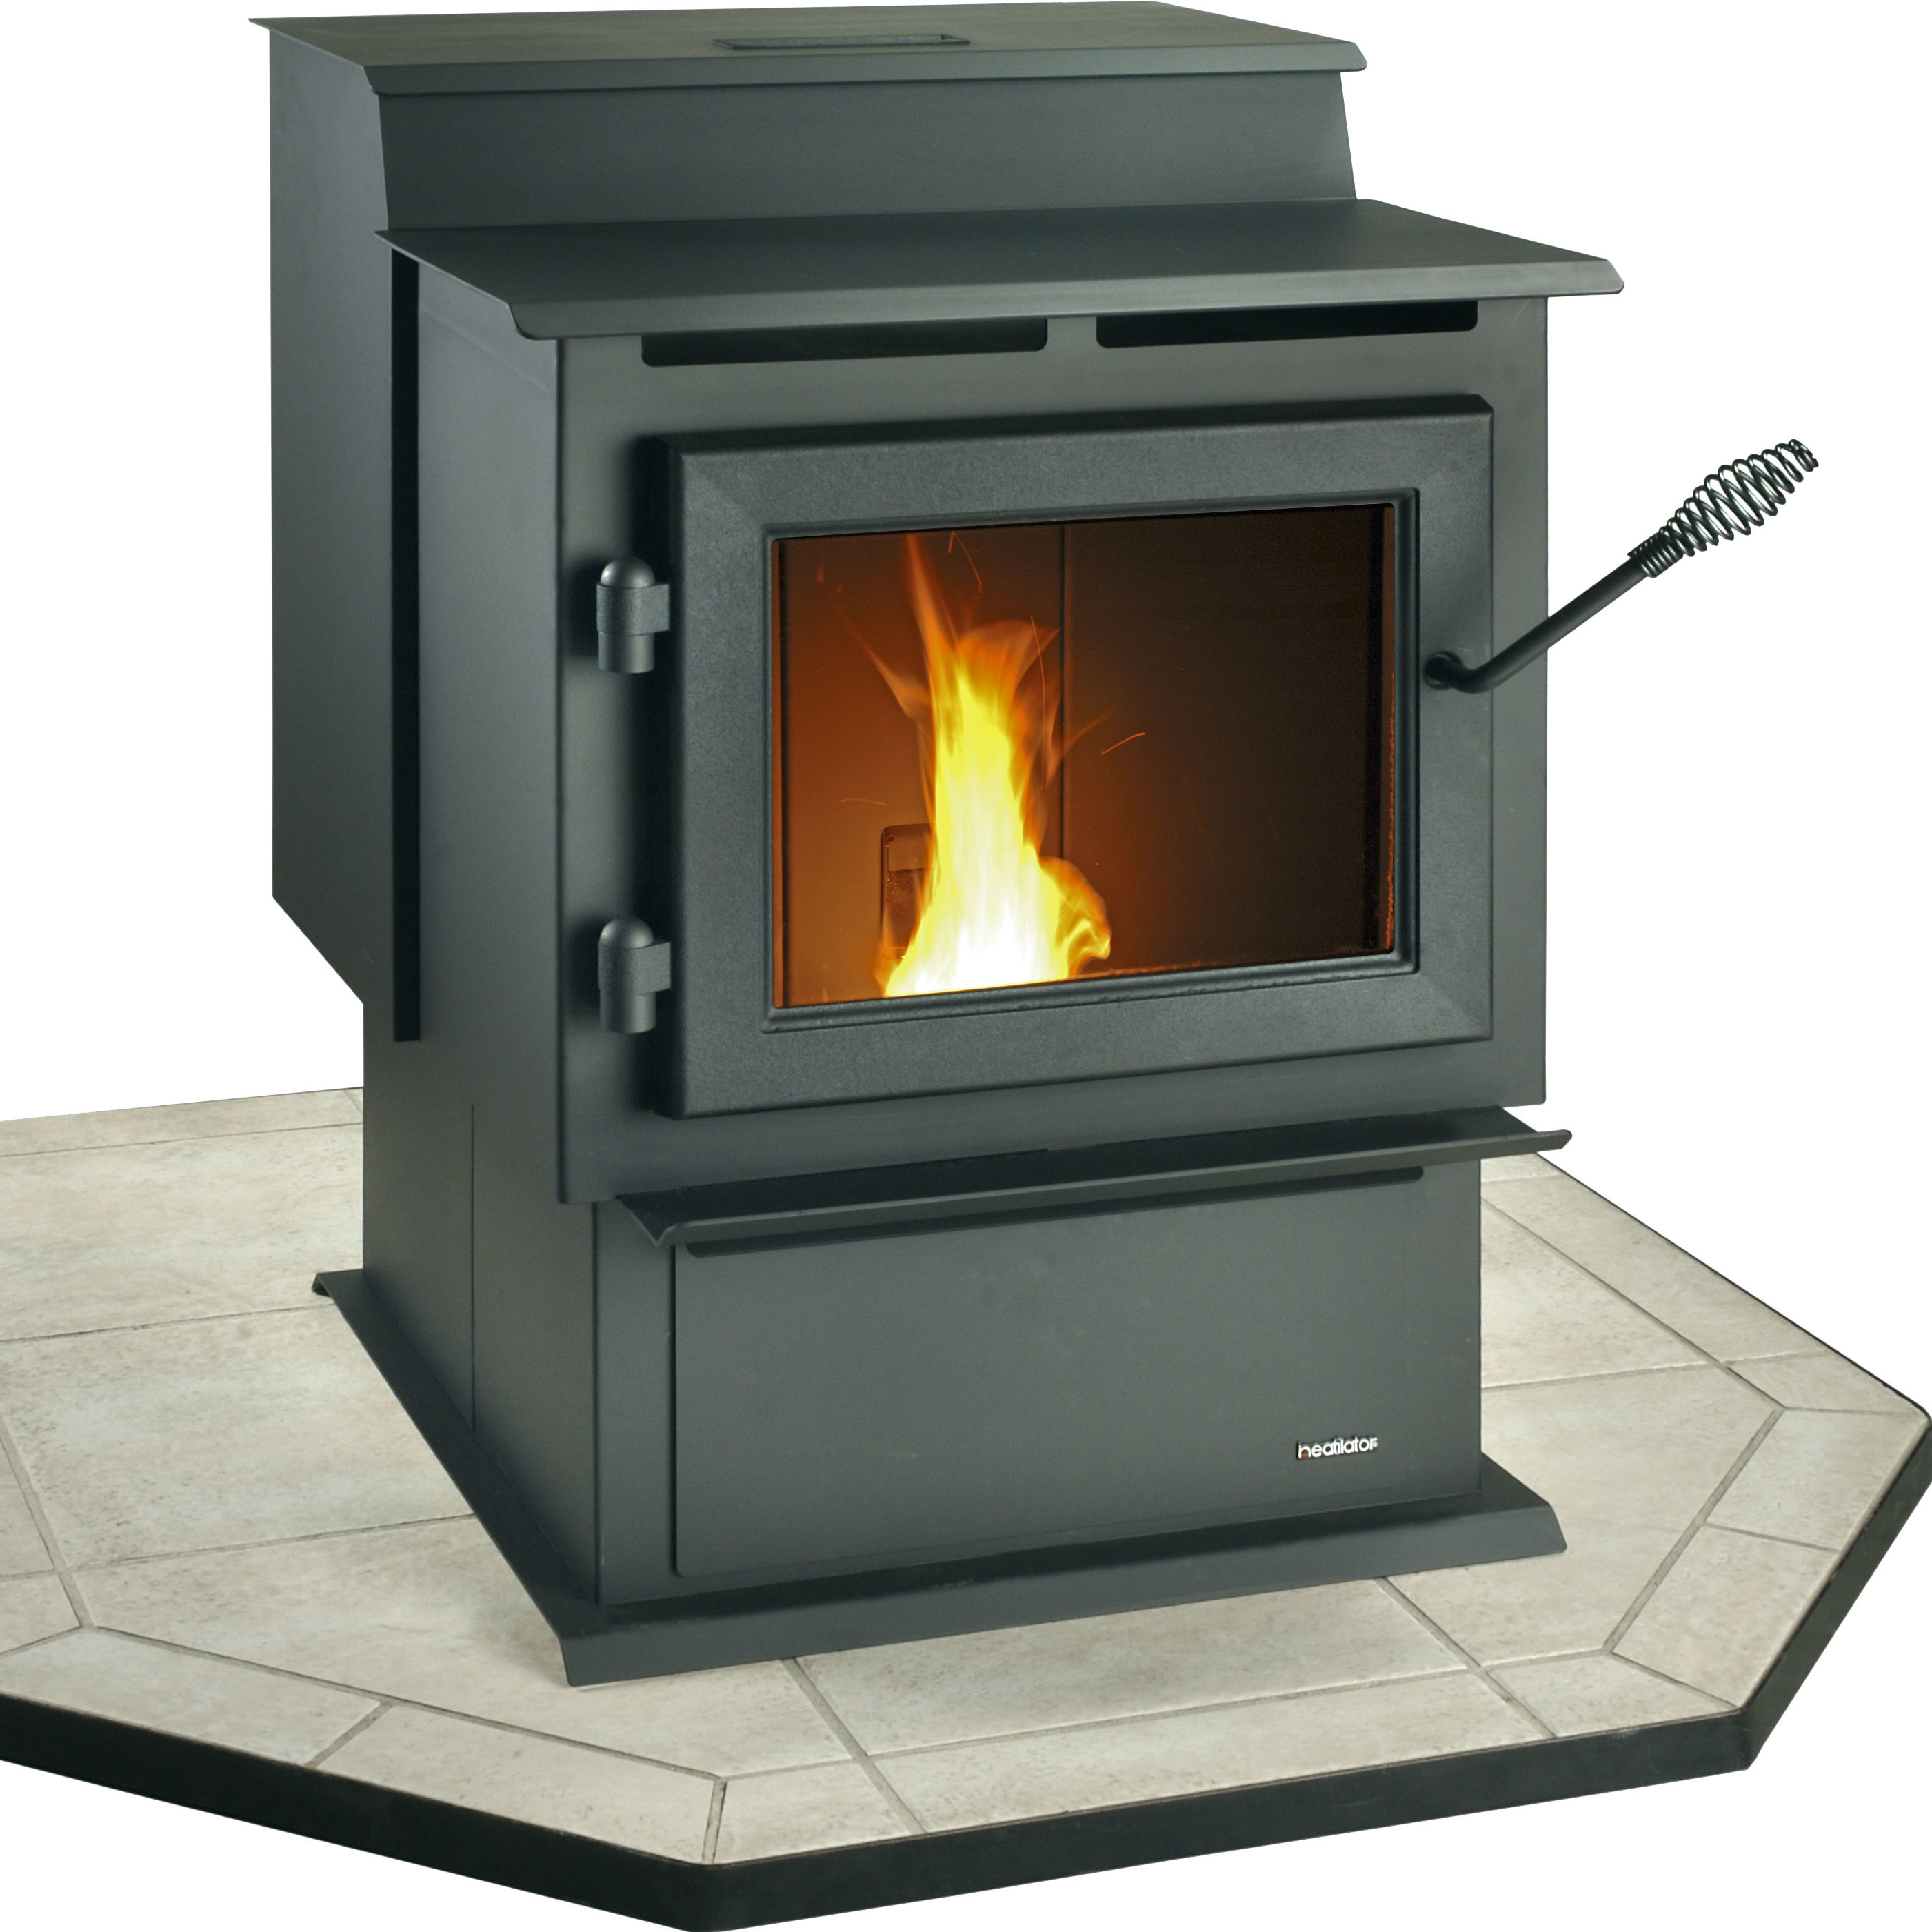 ps series eco pellet traditional stove